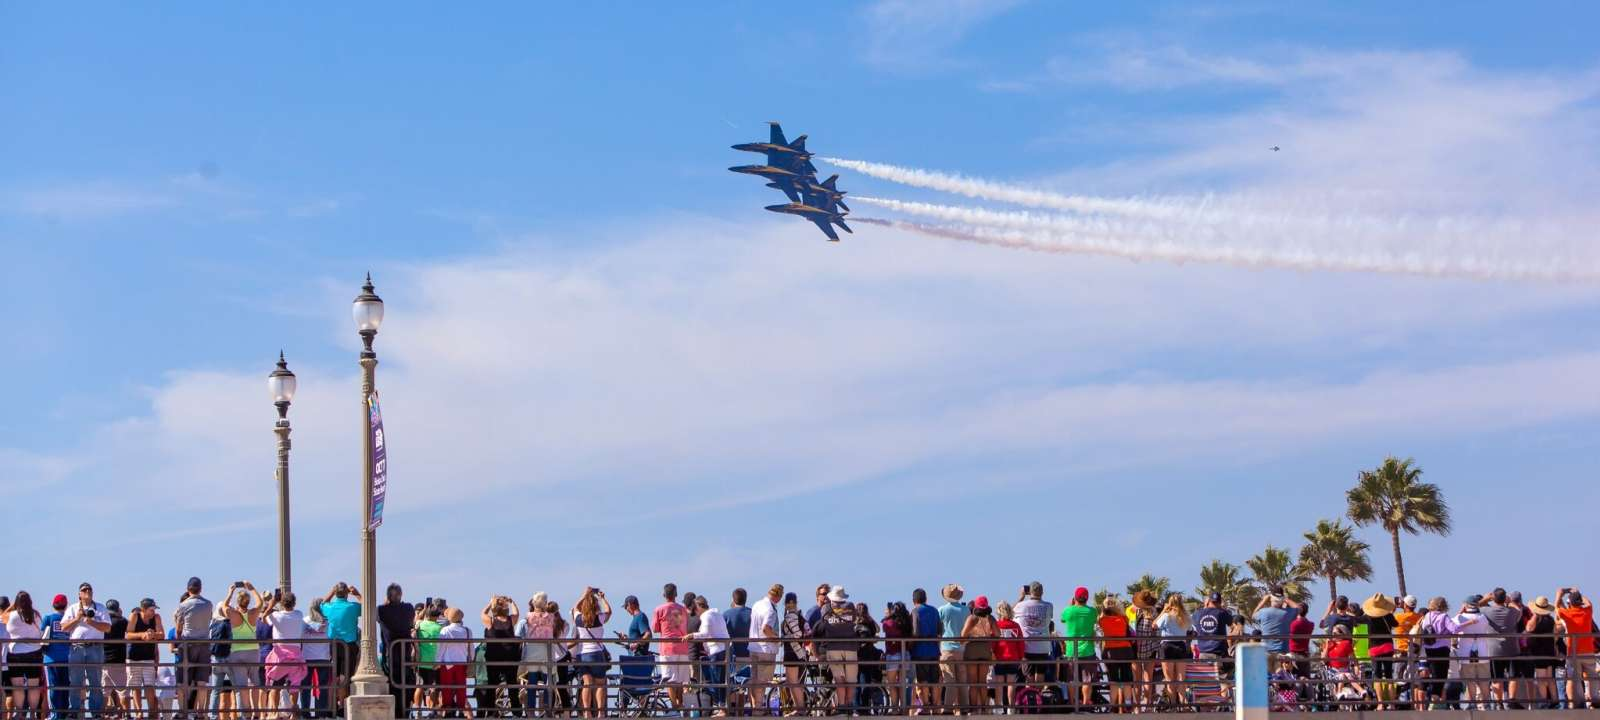 sound of speed airshow 2019